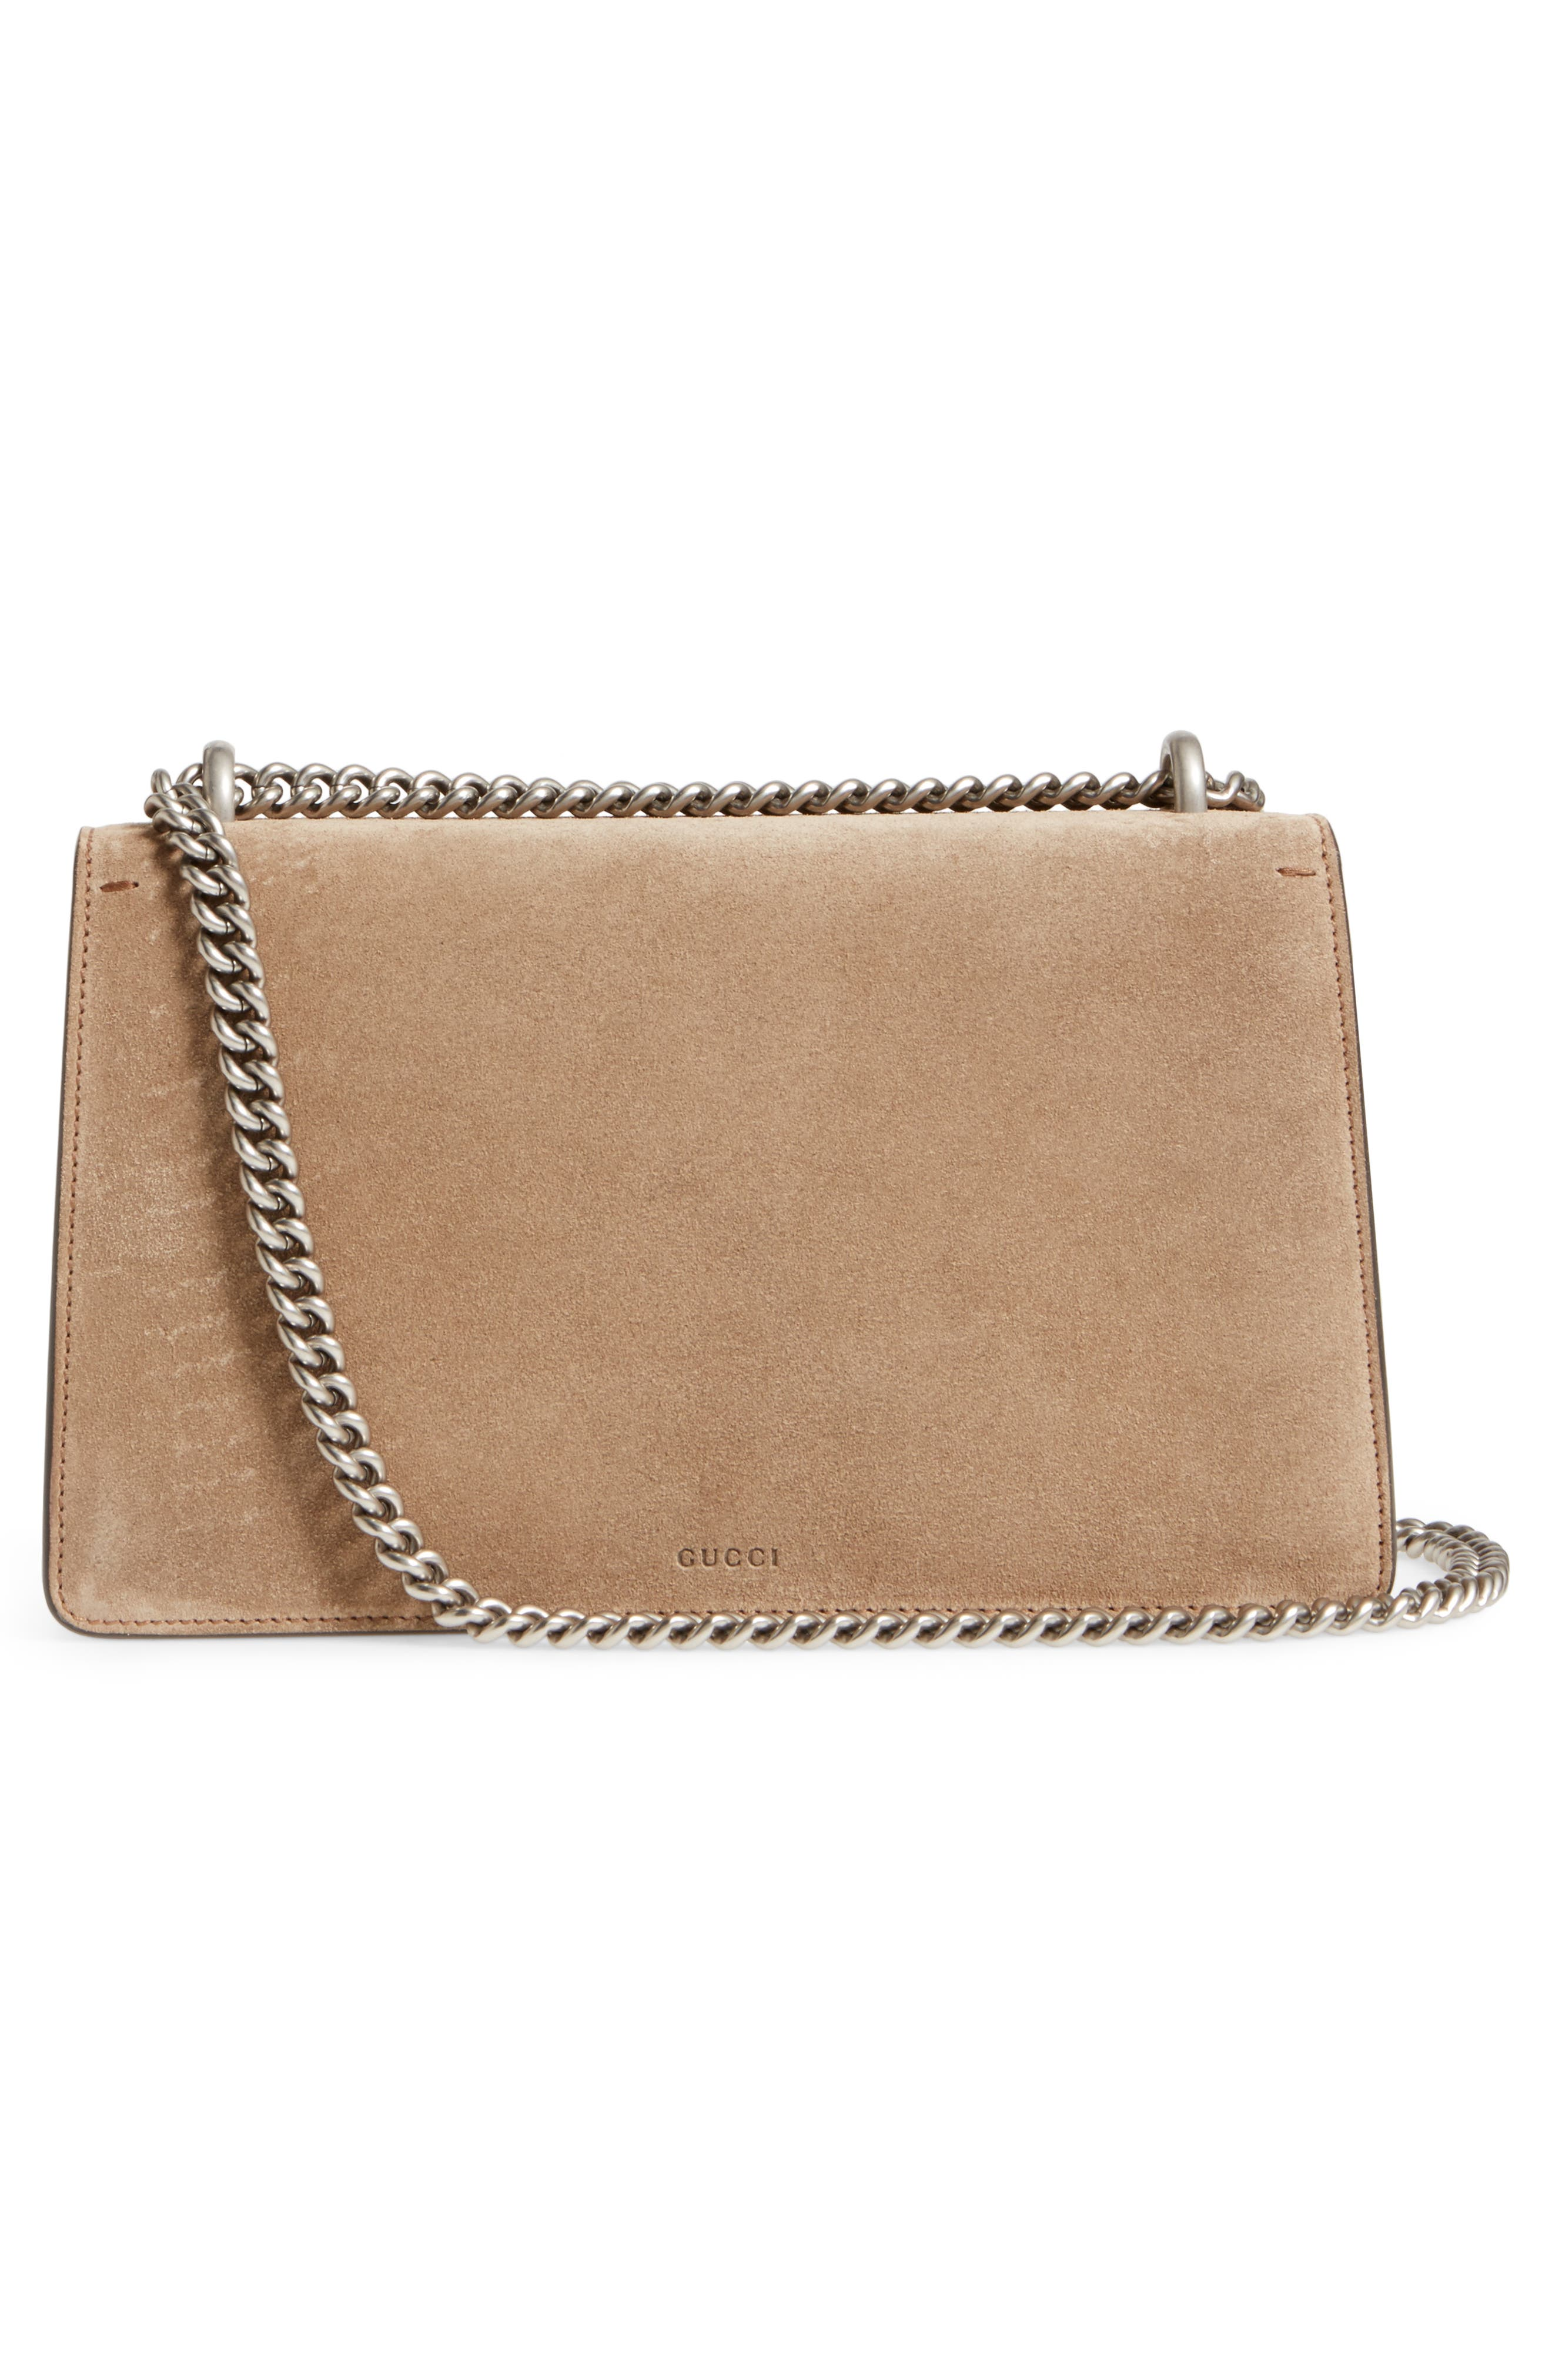 Small Dionysus Suede Shoulder Bag,                             Alternate thumbnail 3, color,                             Taupe